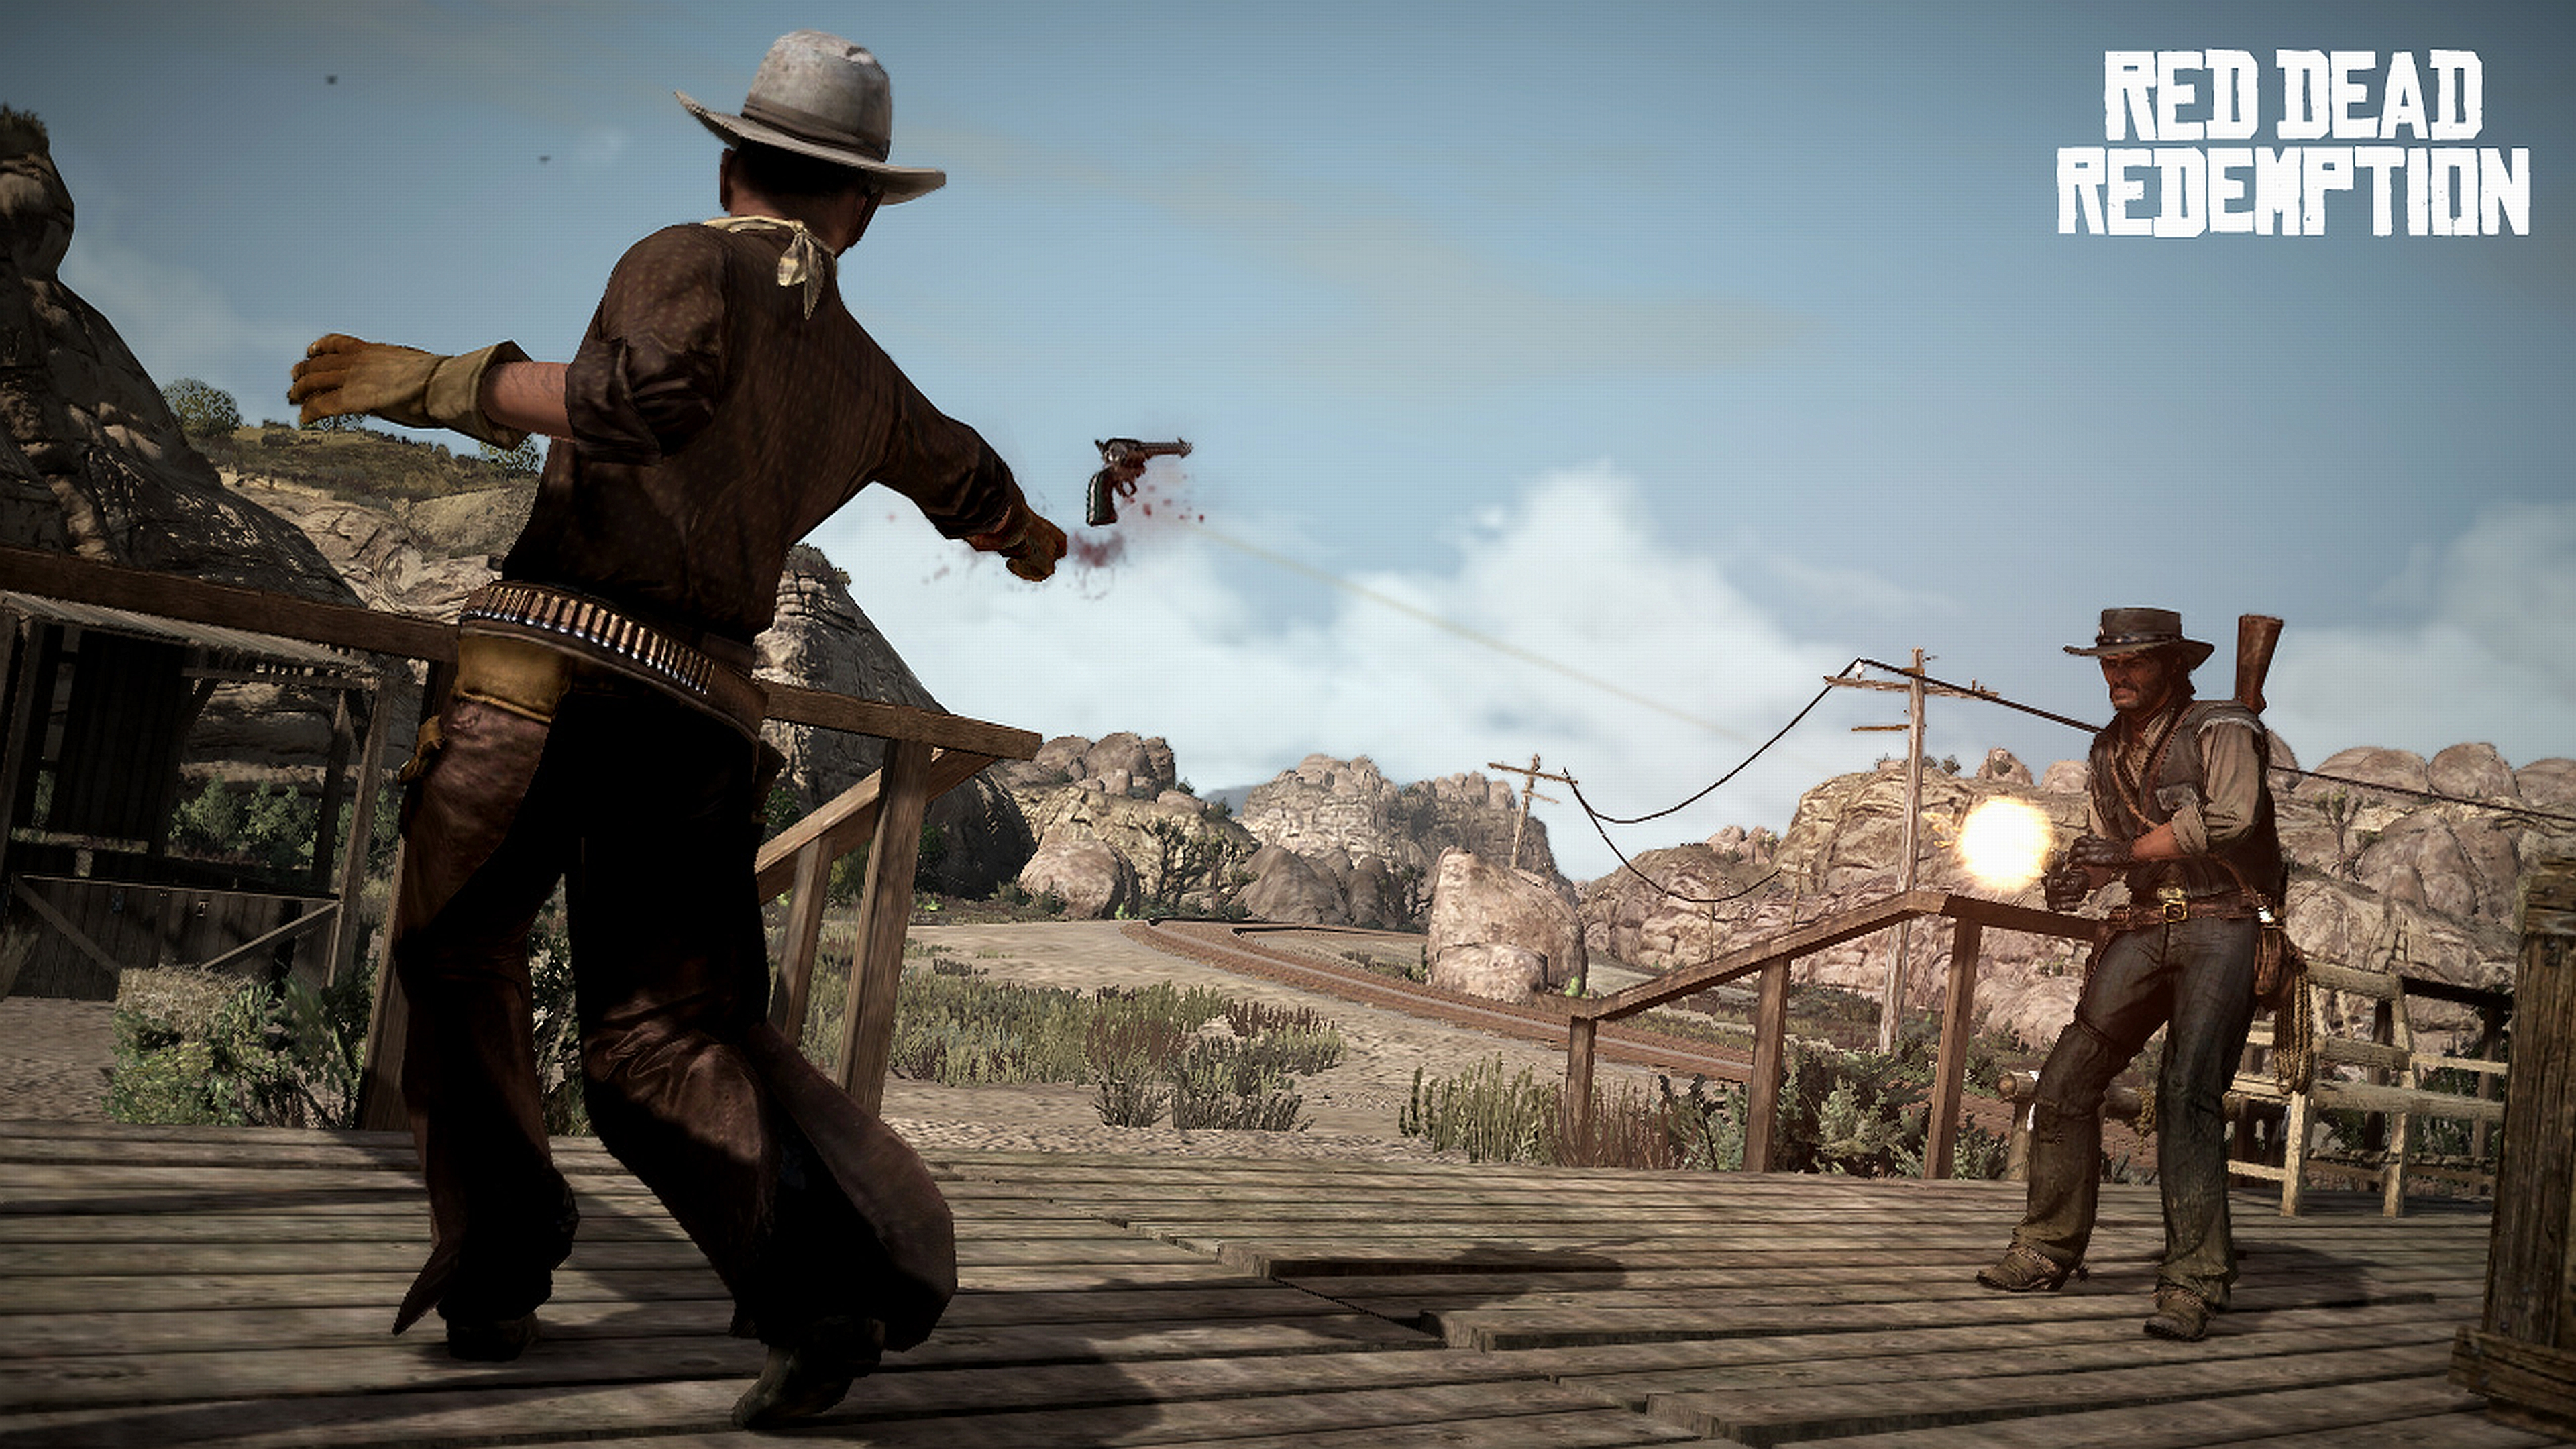 55 Red Dead Redemption Hd Wallpapers Background Images